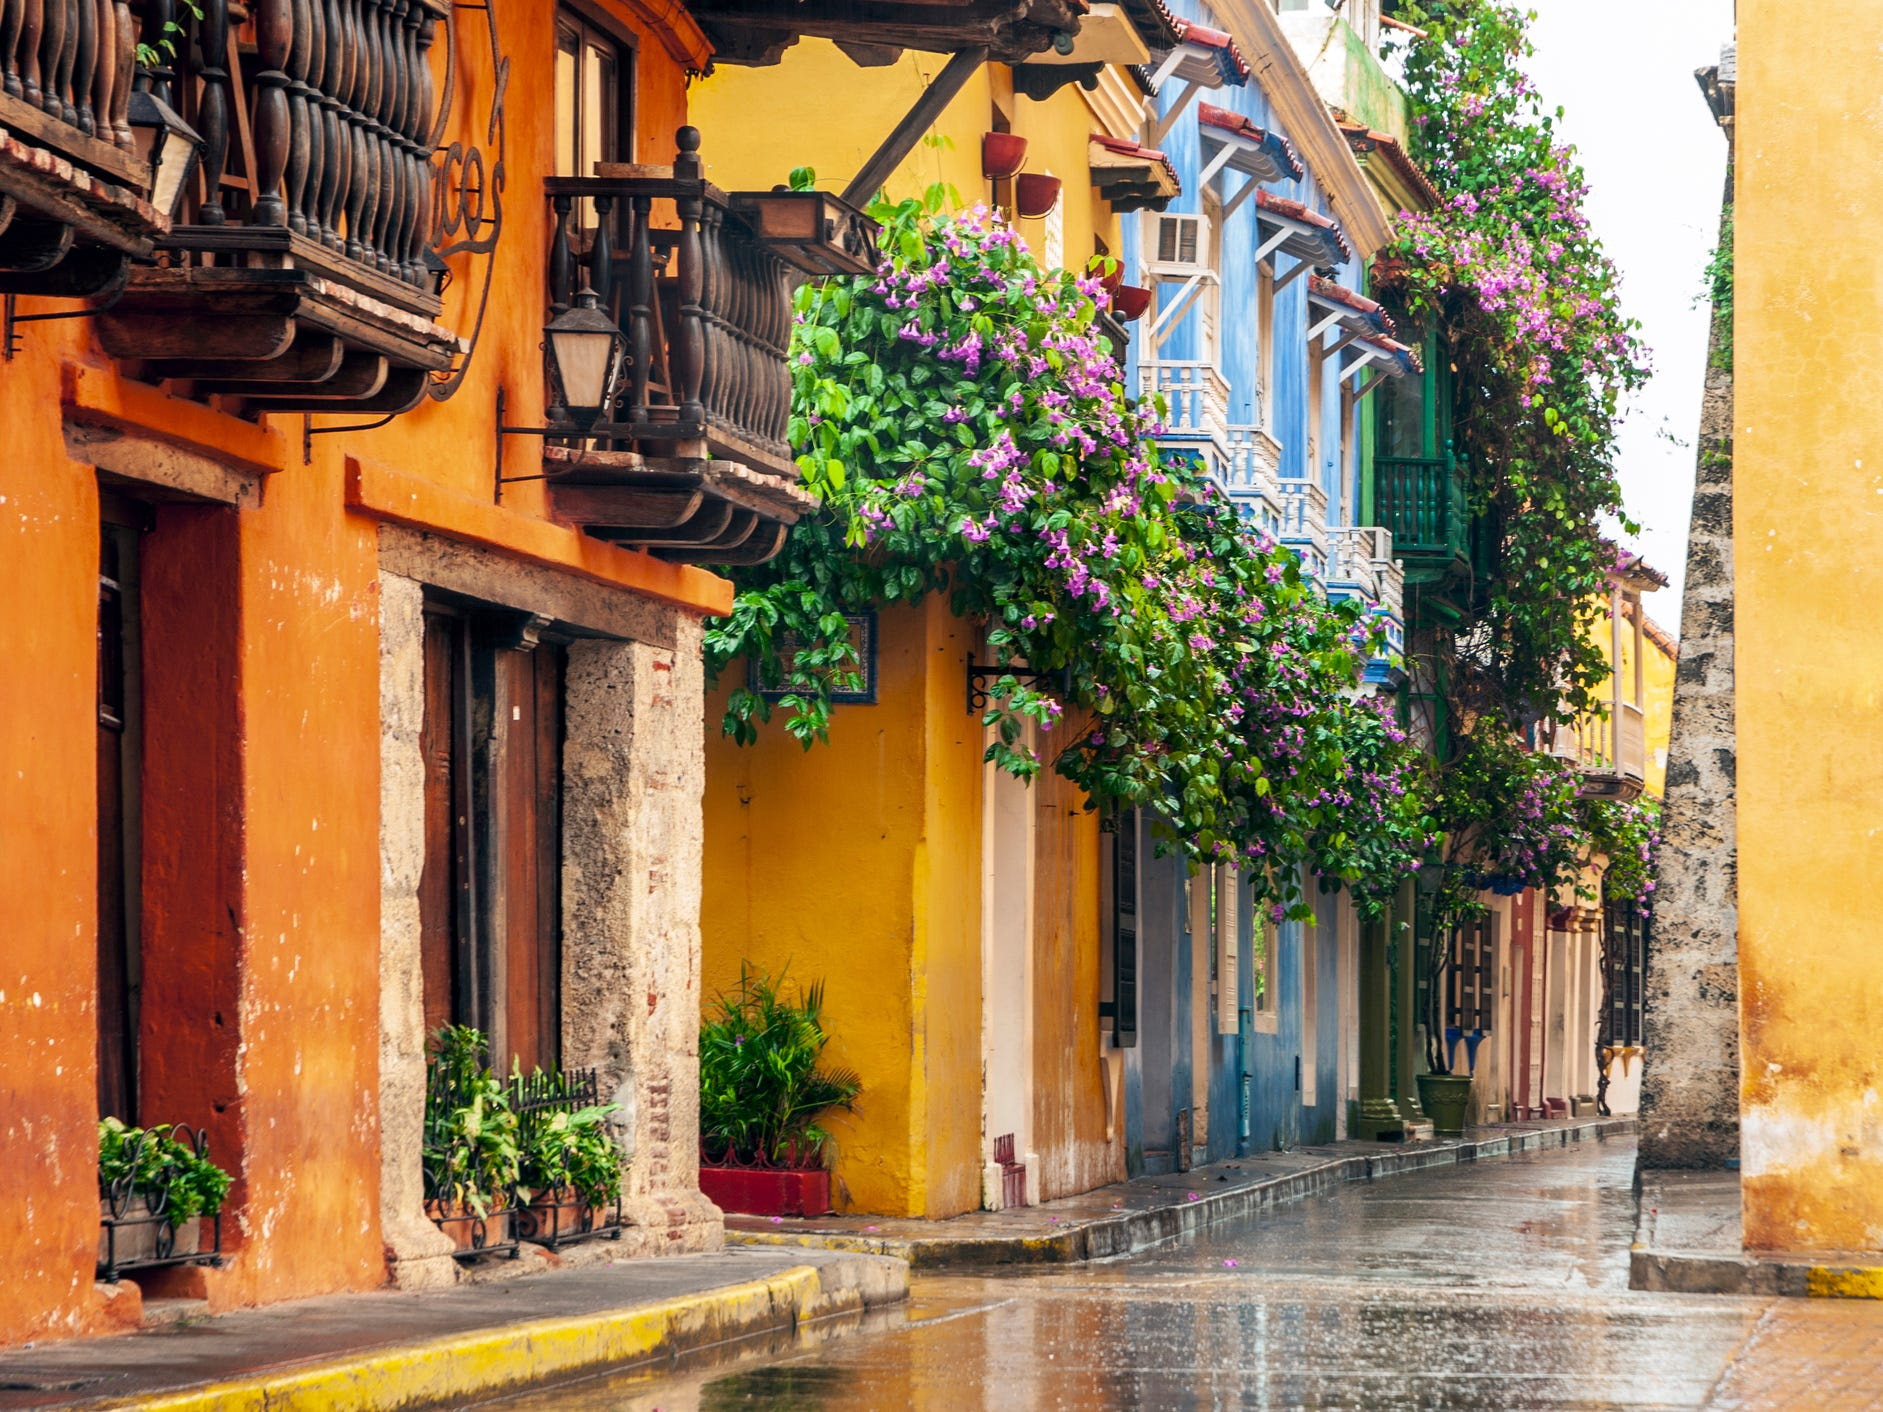 Pink and purple blooms spill out of flowerboxes on wooden balconies, colorful churches loom over sprawling plazas, and the turquoise waters of the Caribbean Sea glimmer in the distance.